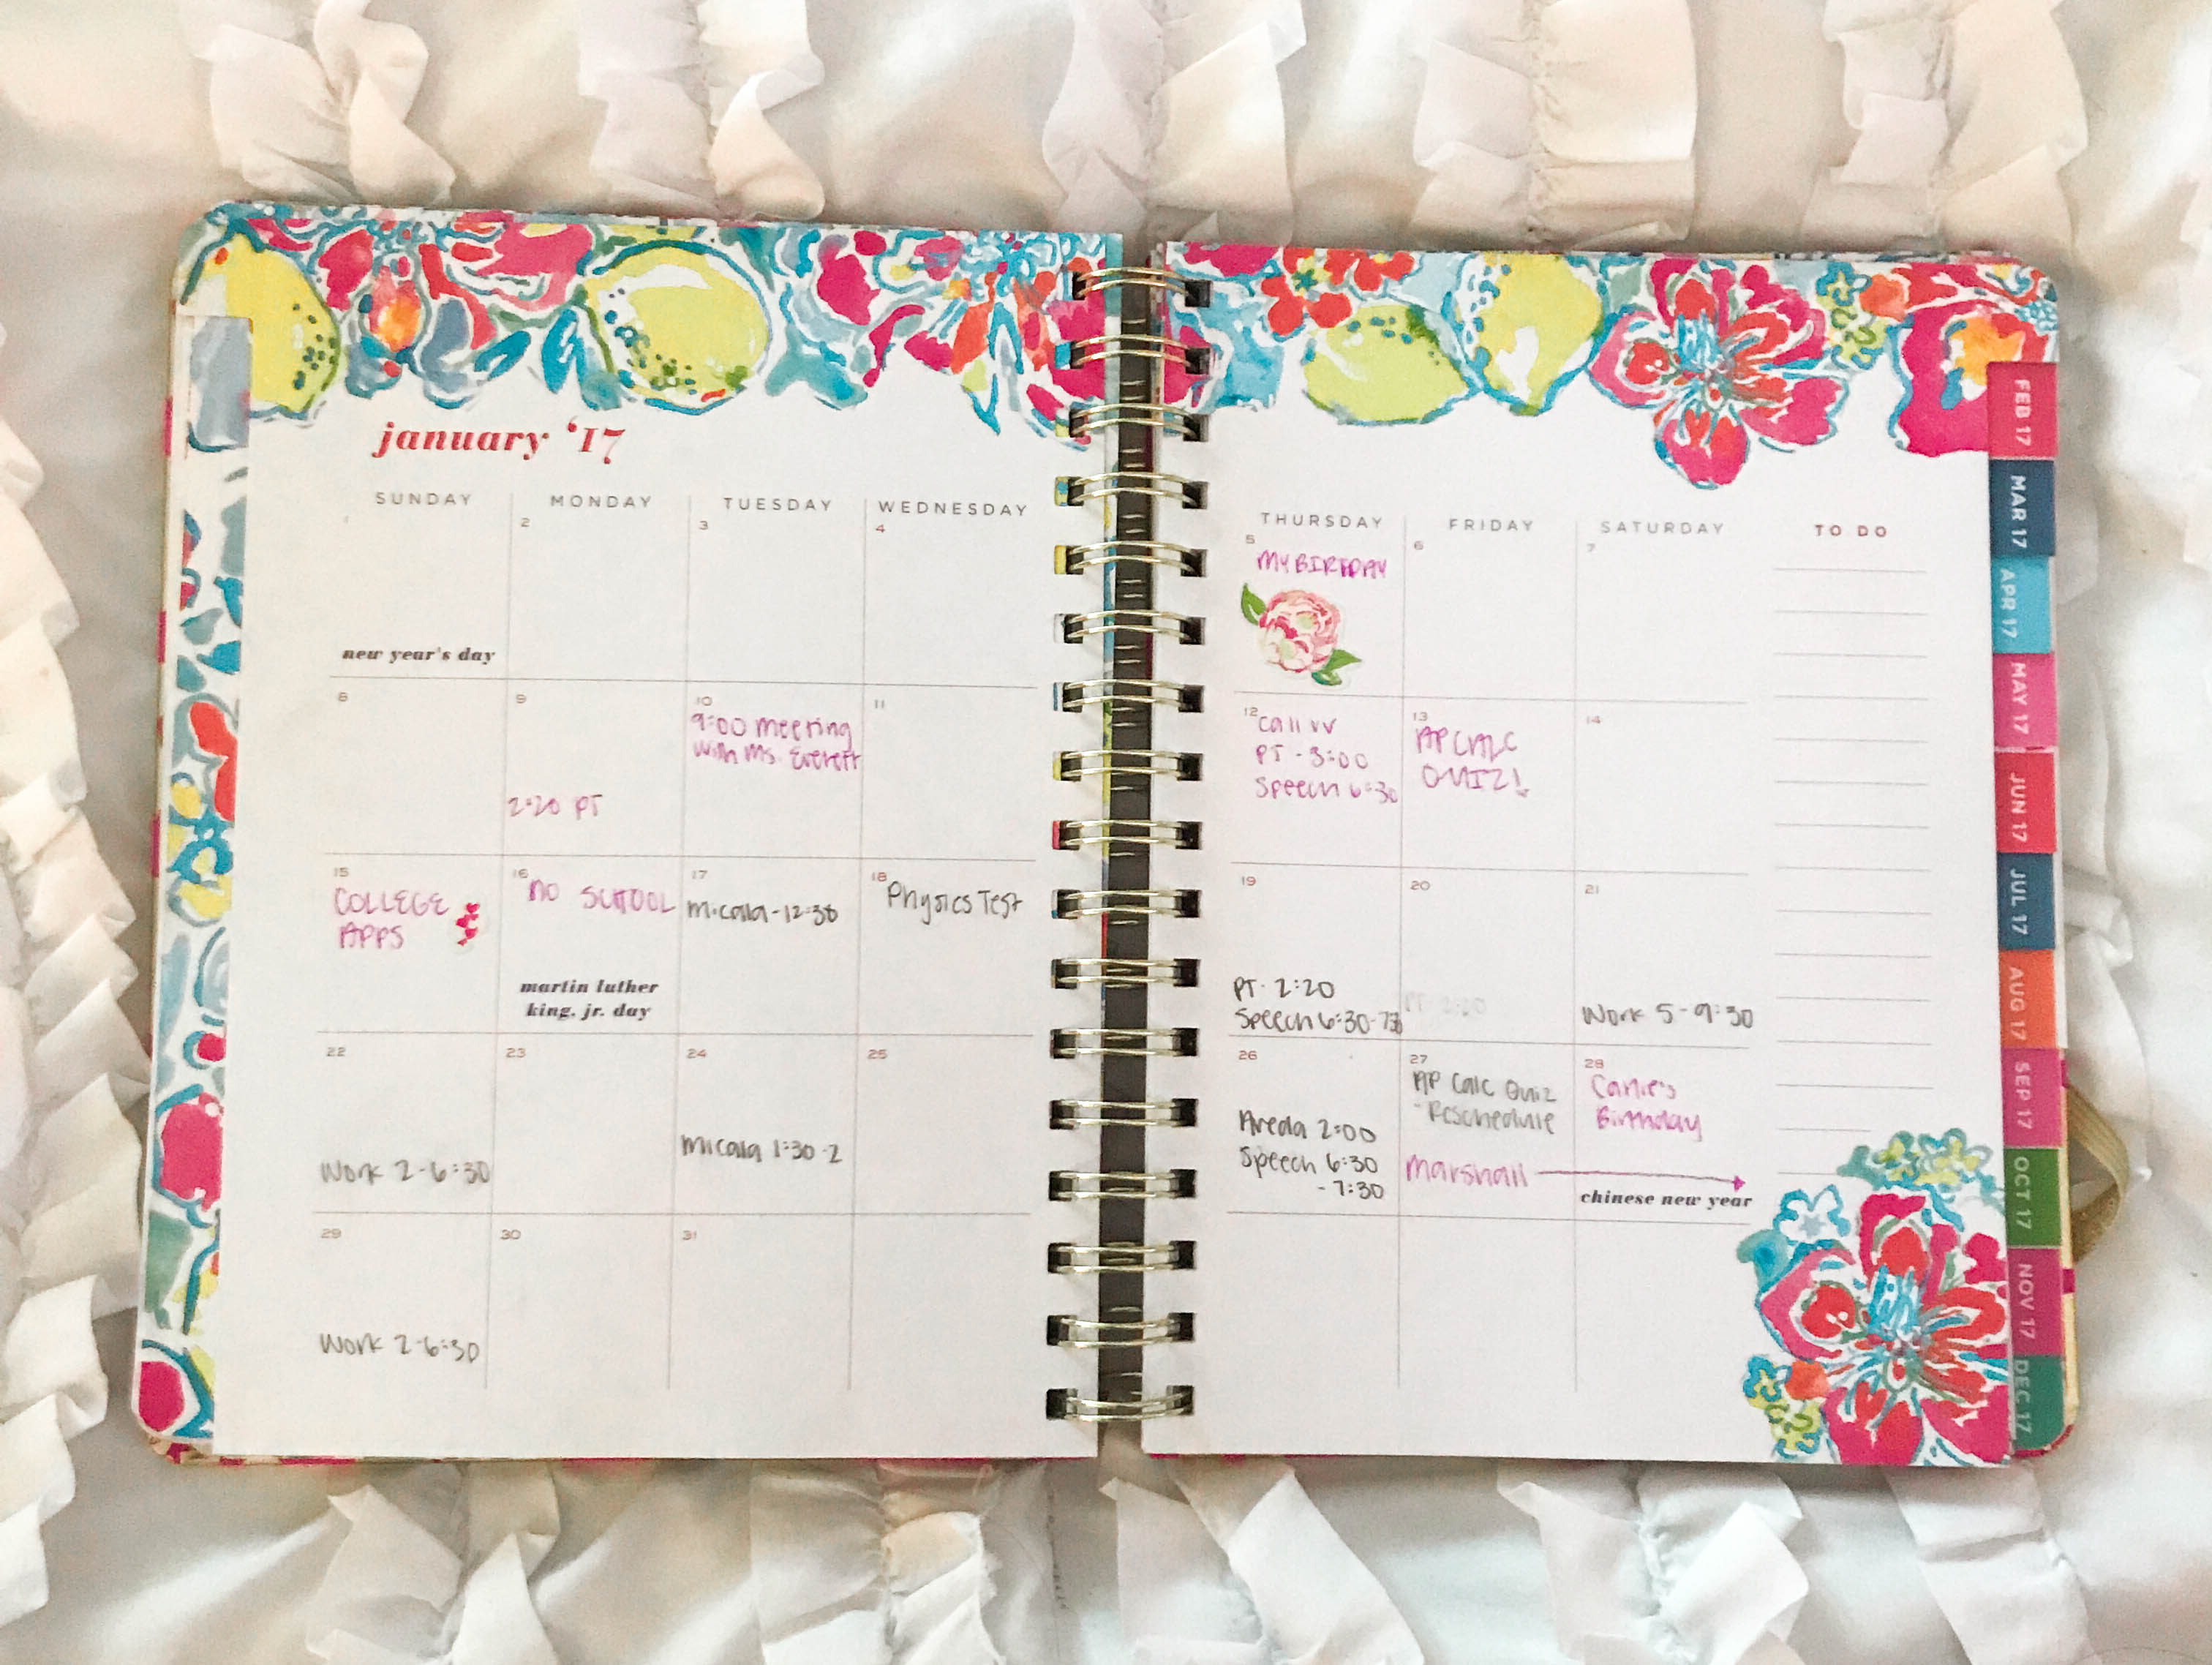 Lilly Pulitzer Agenda planner organization tusk in sun monthly spread month floral flowers on white duvet cover